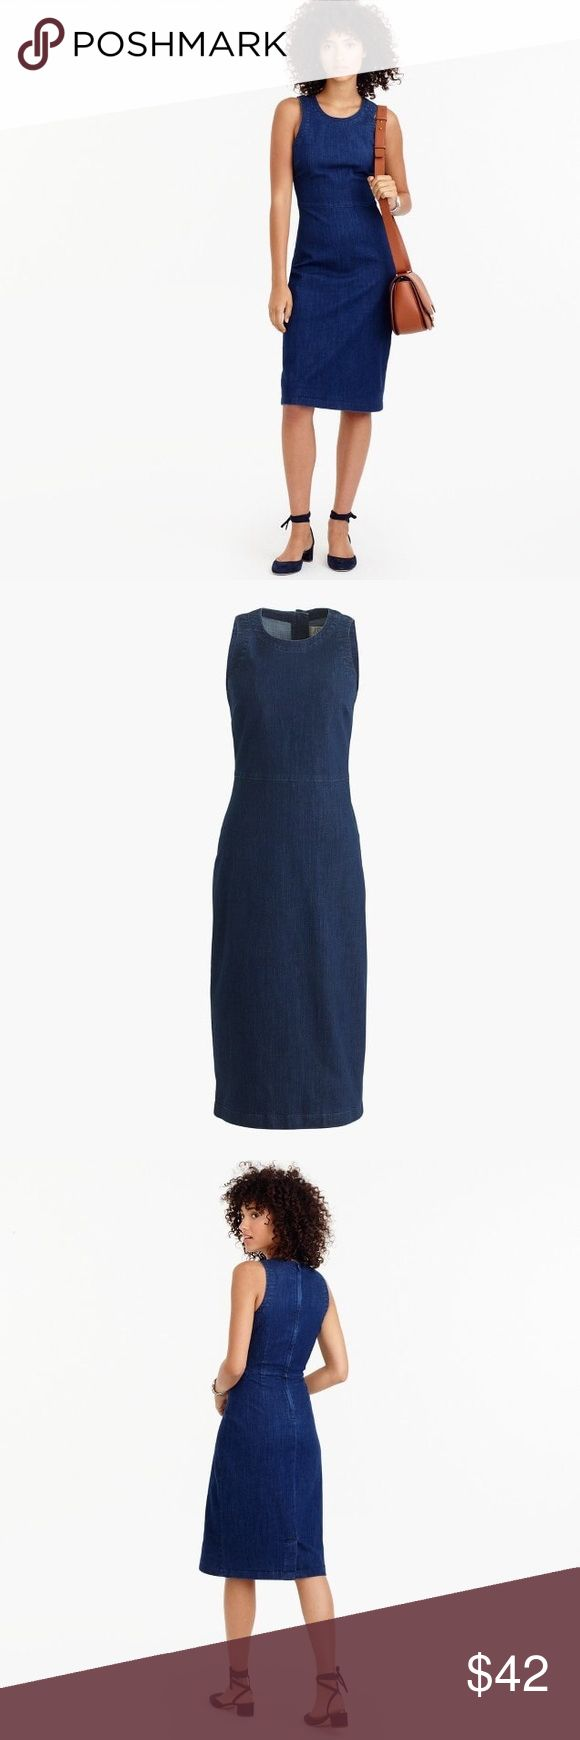 """♥️ EUC J. CREW DARK DENIM Sheath Dress Stretch 8 EUC J. Crew Denim sheath dress in size 8.  SIZE & FIT Sheath silhouette. Falls above knee, 39"""" from high point of shoulder (based on size 6). Fits true to size.  PRODUCT DETAILS Proof that denim is appropriate for every occasion. This slim sheath dress features a classic dark denim wash that goes with everything. We like it on its own or layered over fitted turtlenecks for cooler weather.  Cotton/lyocell/poly/elastane. Zip closure.  More…"""